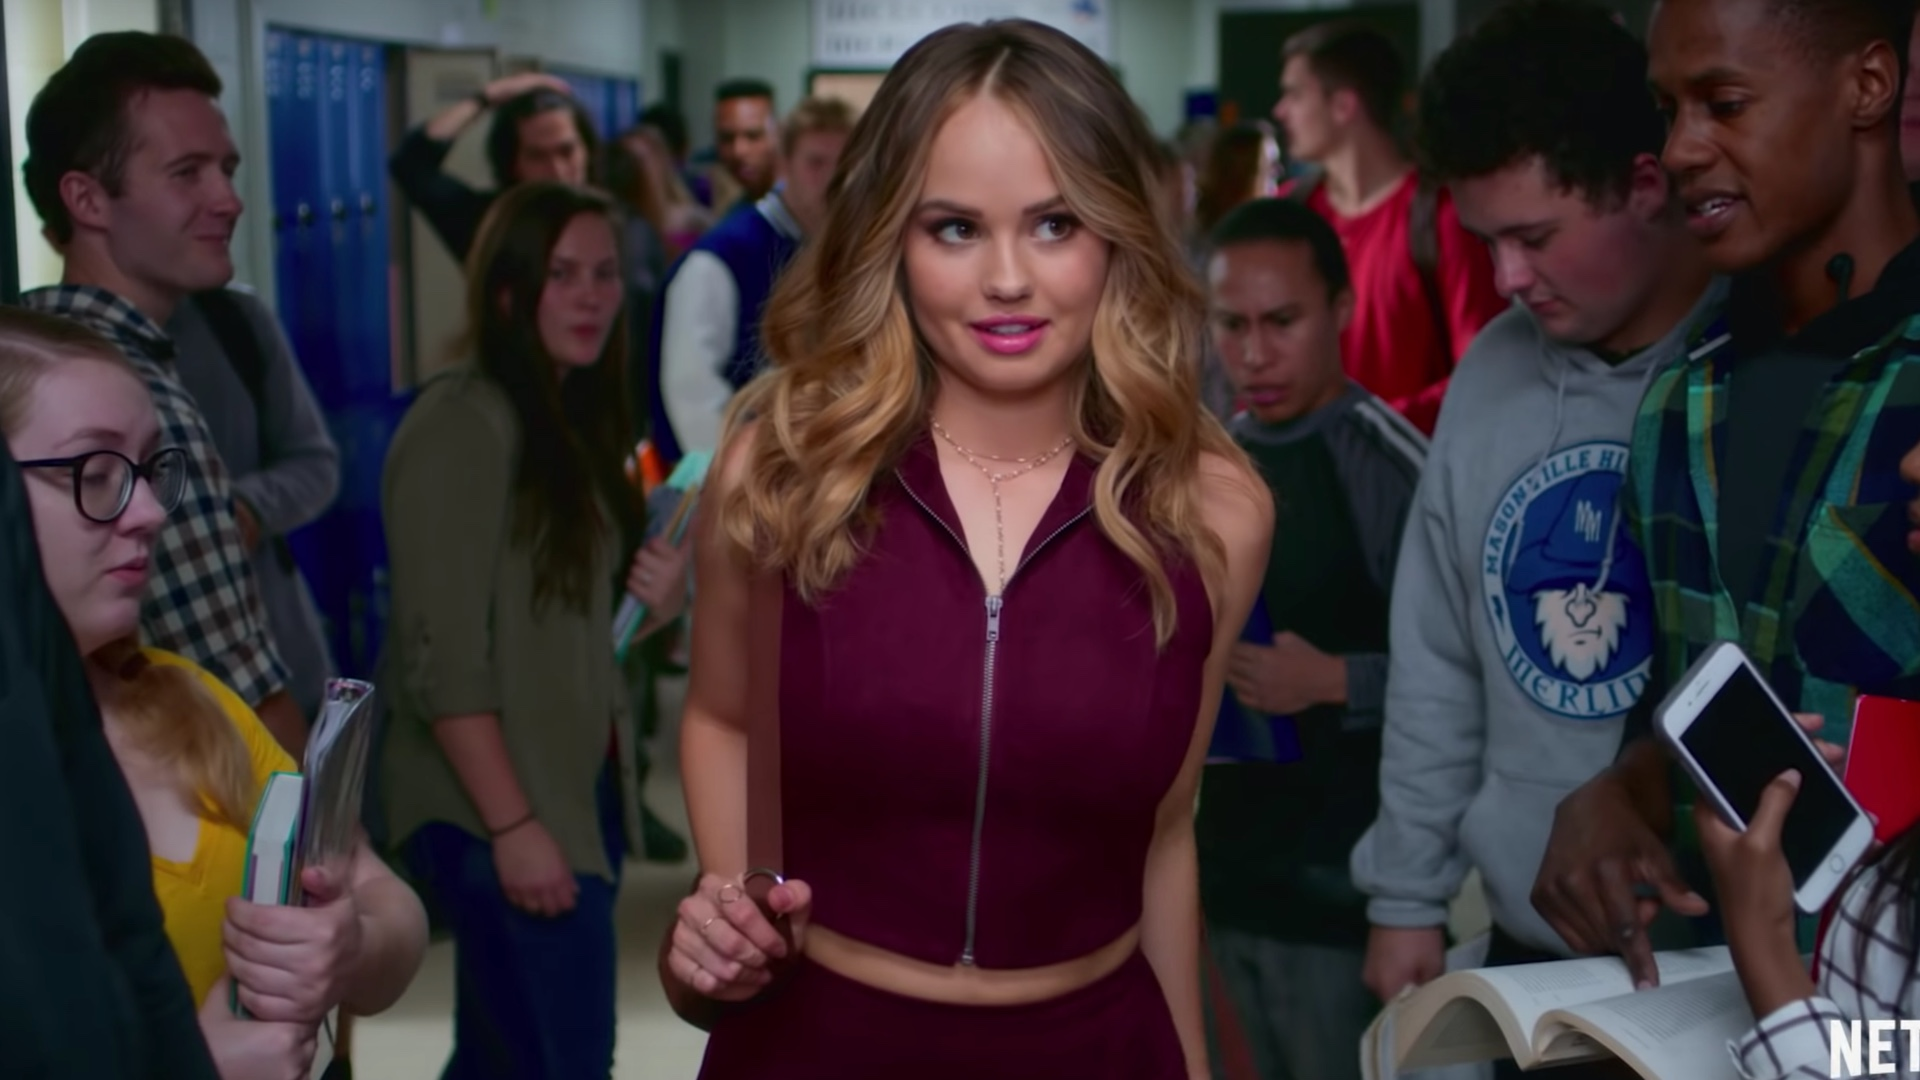 trailer-for-netflixs-insatiable-tells-a-coming-of-rage-story-social.jpg